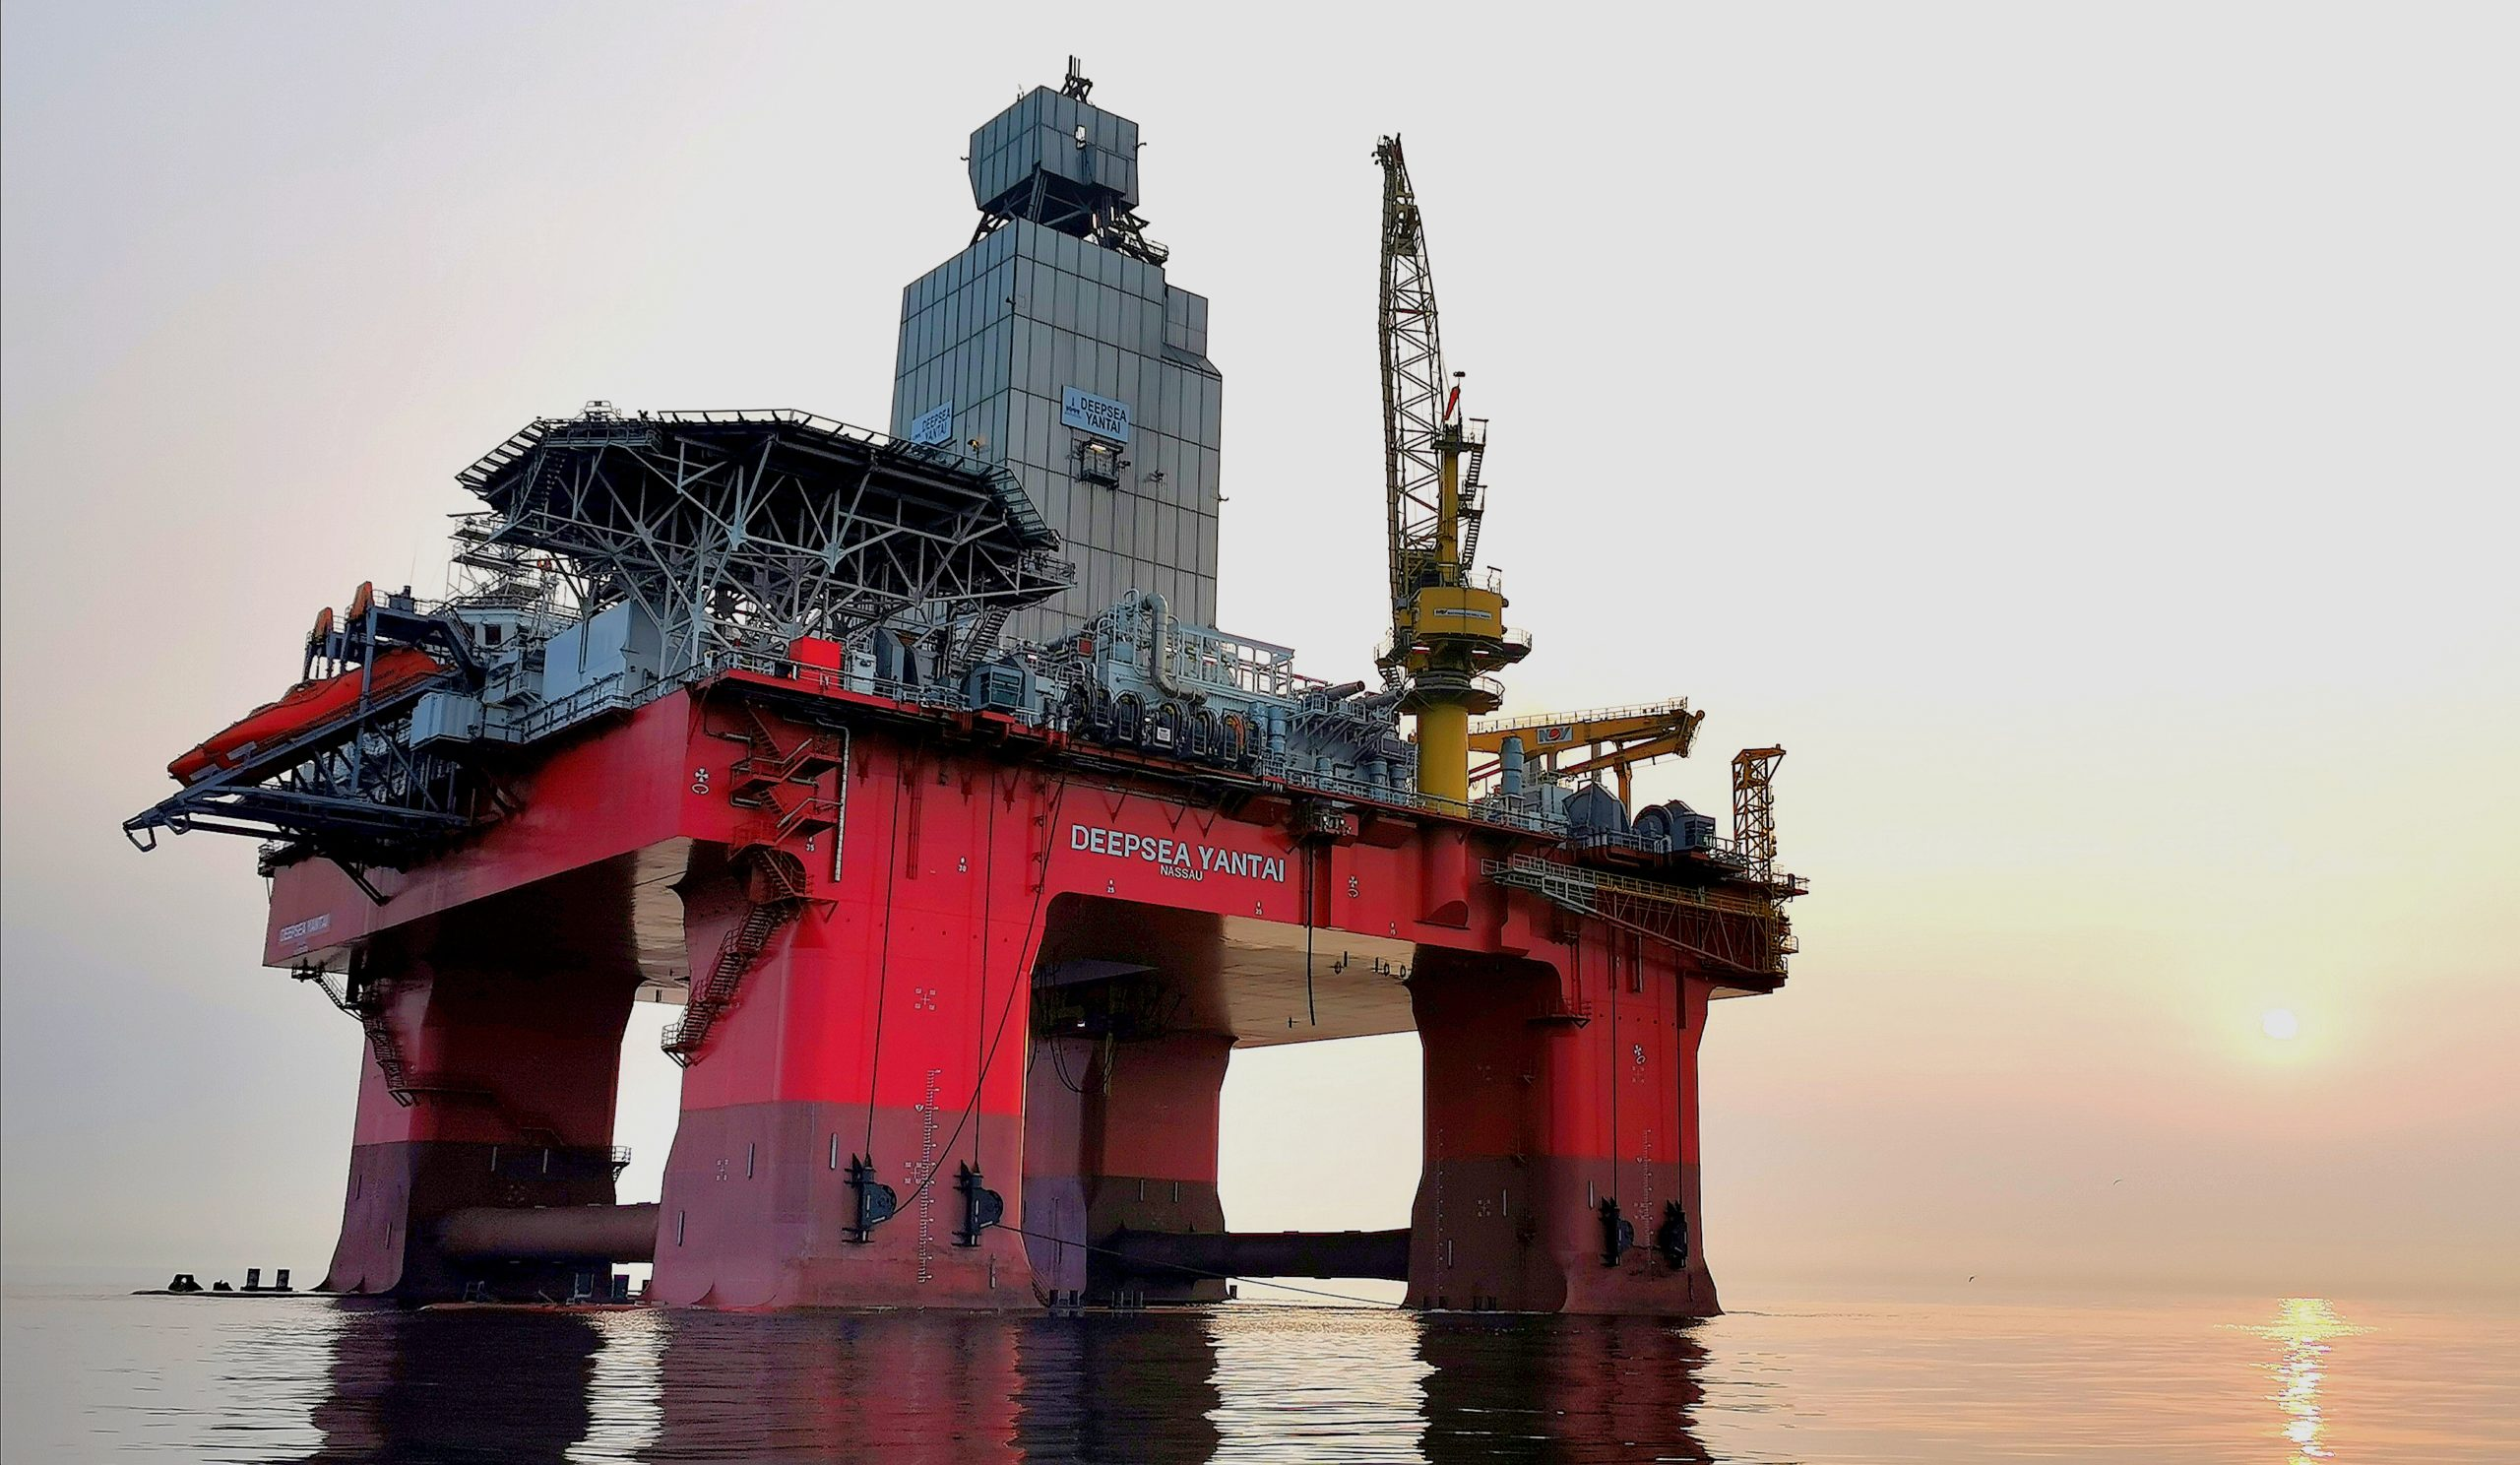 Neptune Energy used the Deepsea Yantai to drill Dugong, which confirmed hydrocarbons last week.